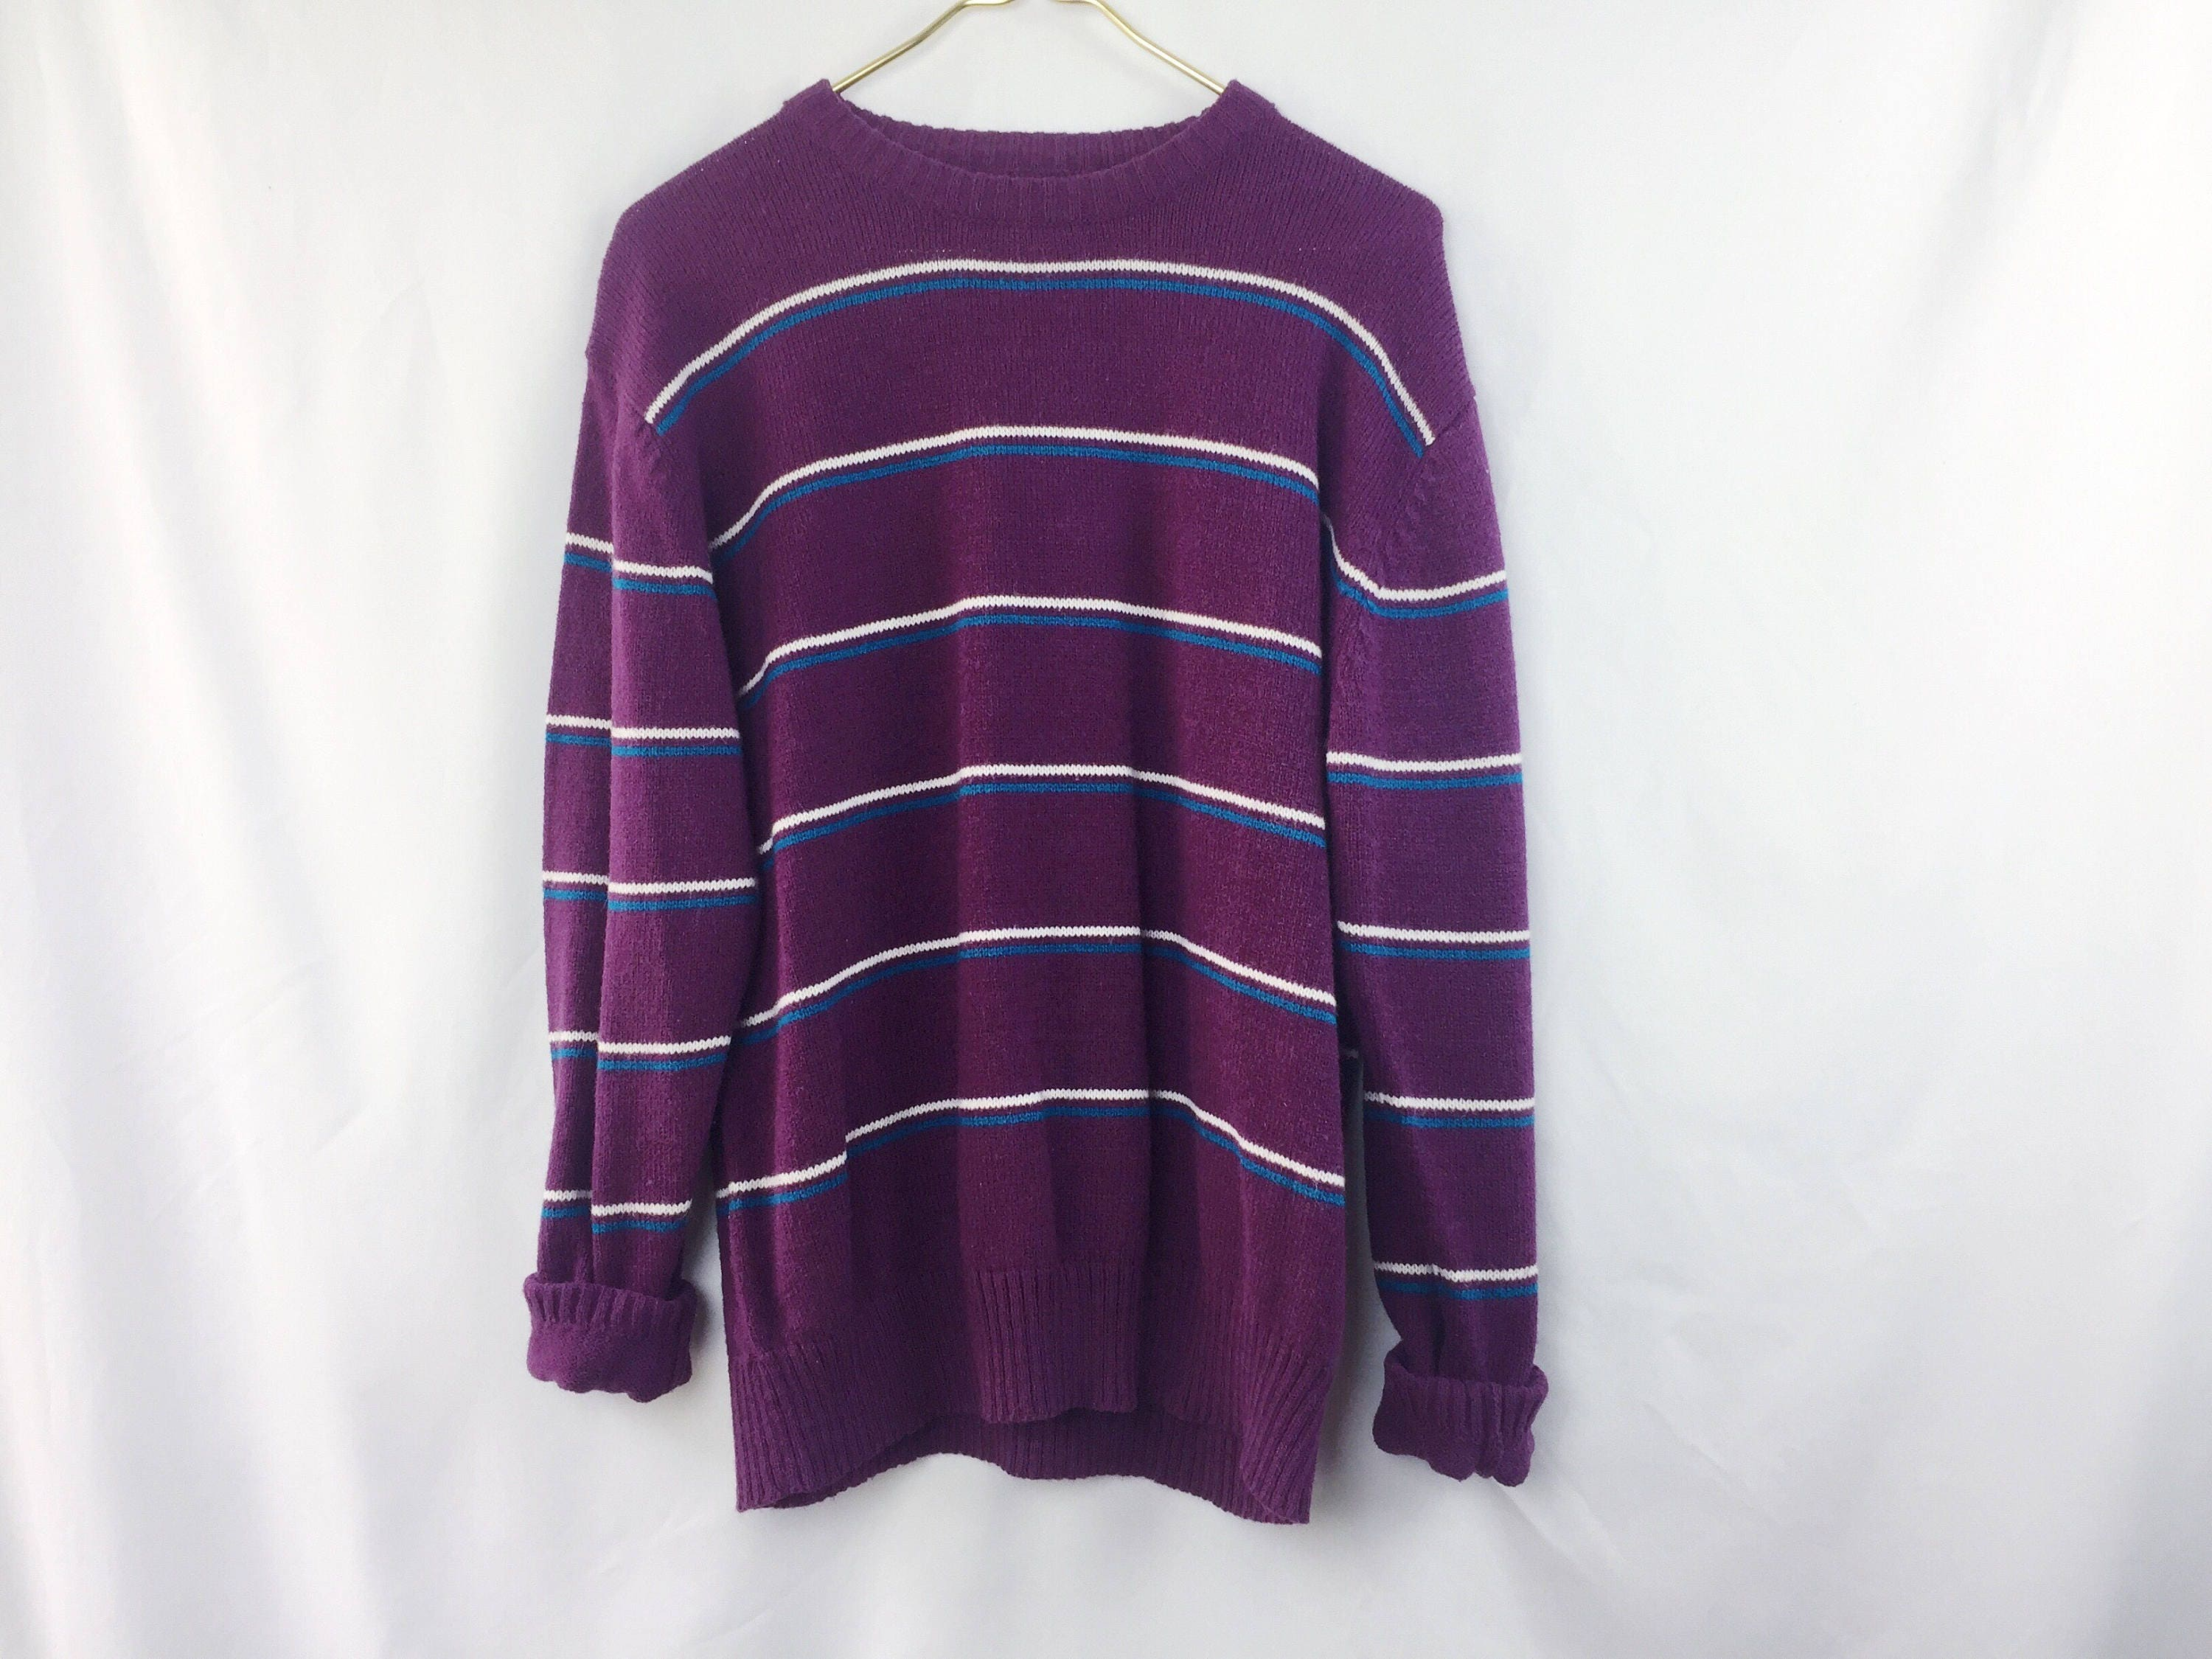 90s Vintage Le Tigre Pullover Sweater // Purple Striped Knit